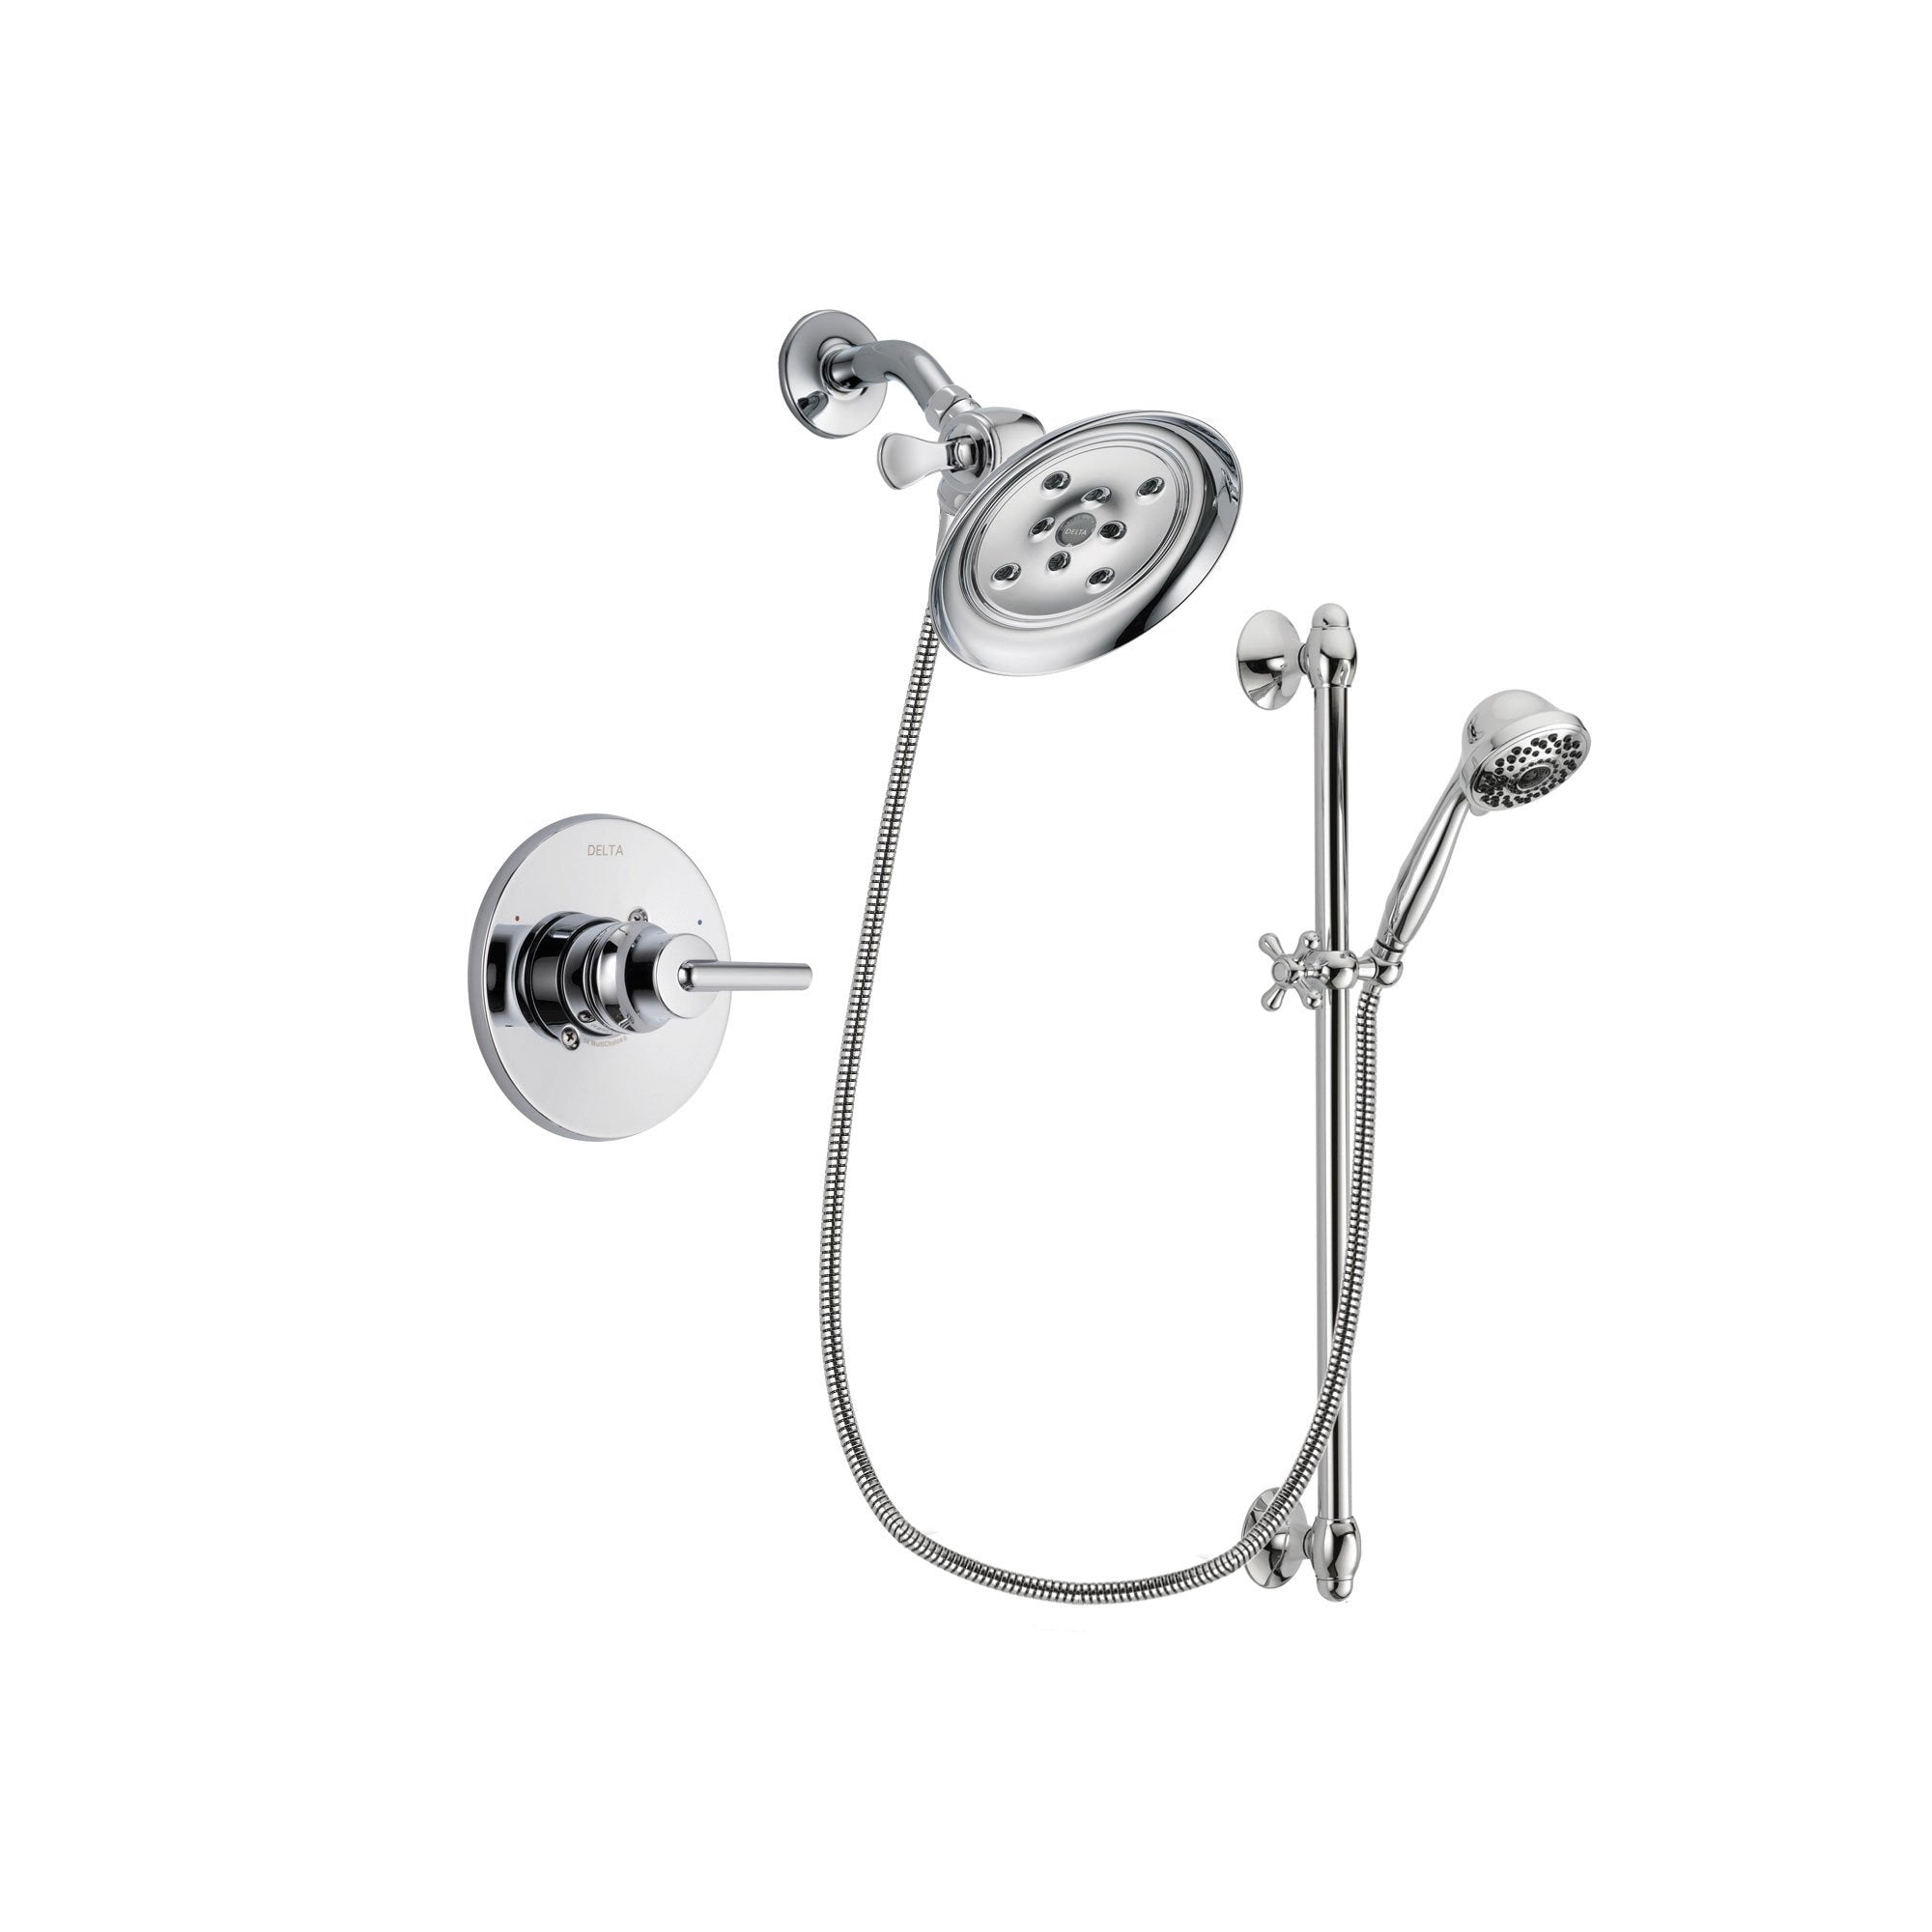 Delta Trinsic Chrome Shower Faucet System w/ Showerhead and Hand Shower DSP0642V